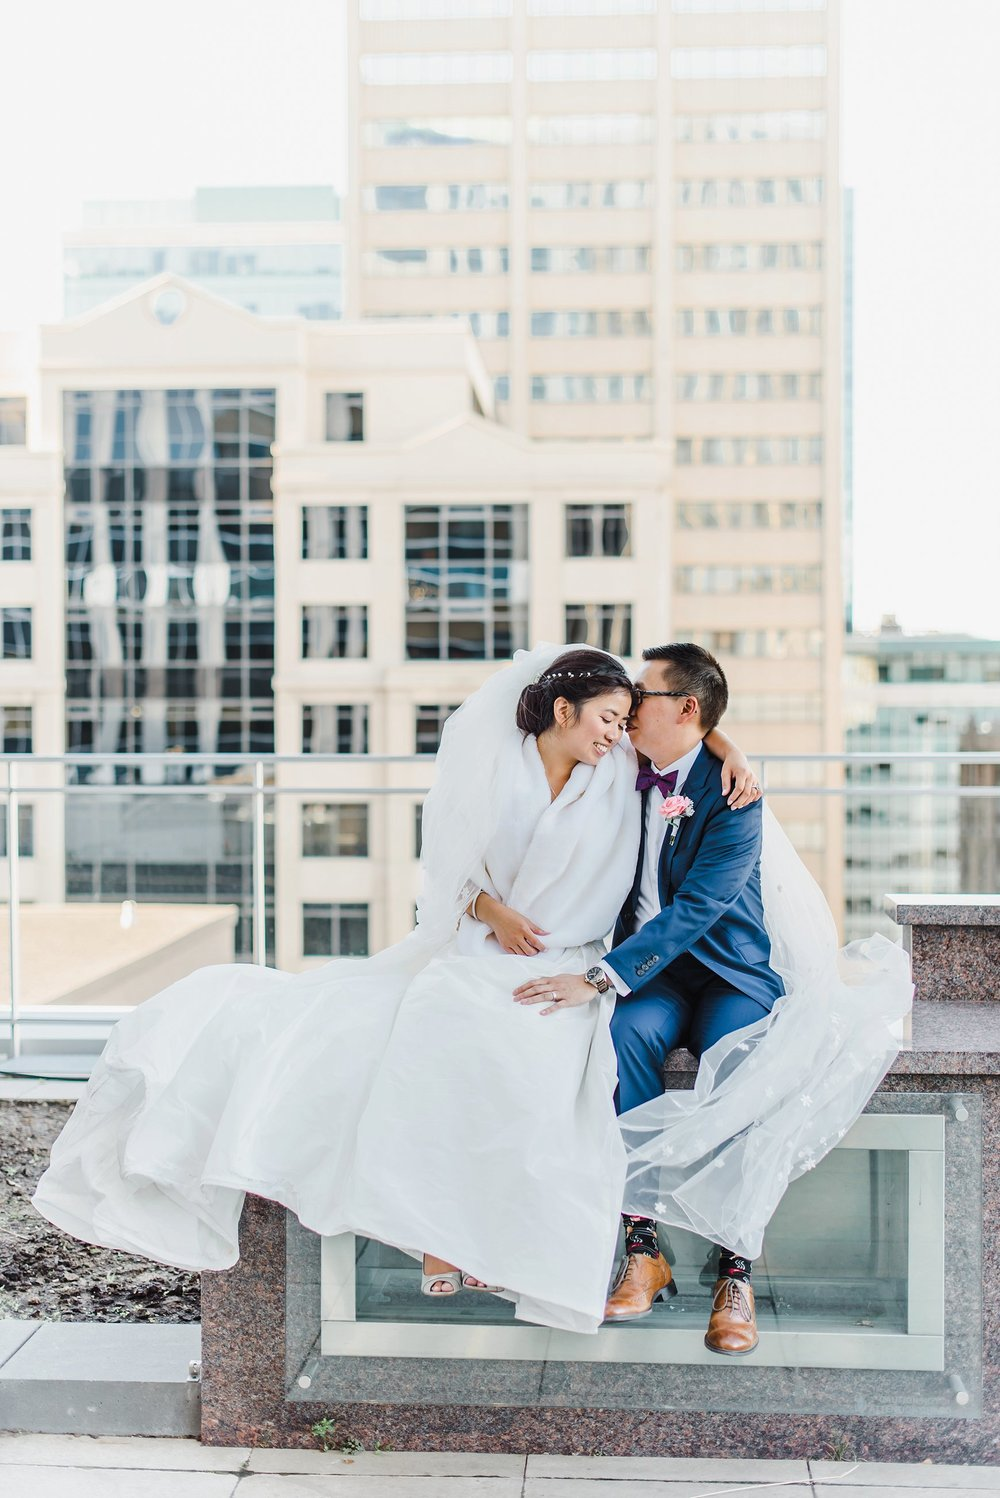 light airy indie fine art ottawa wedding photographer | Ali and Batoul Photography_1523.jpg